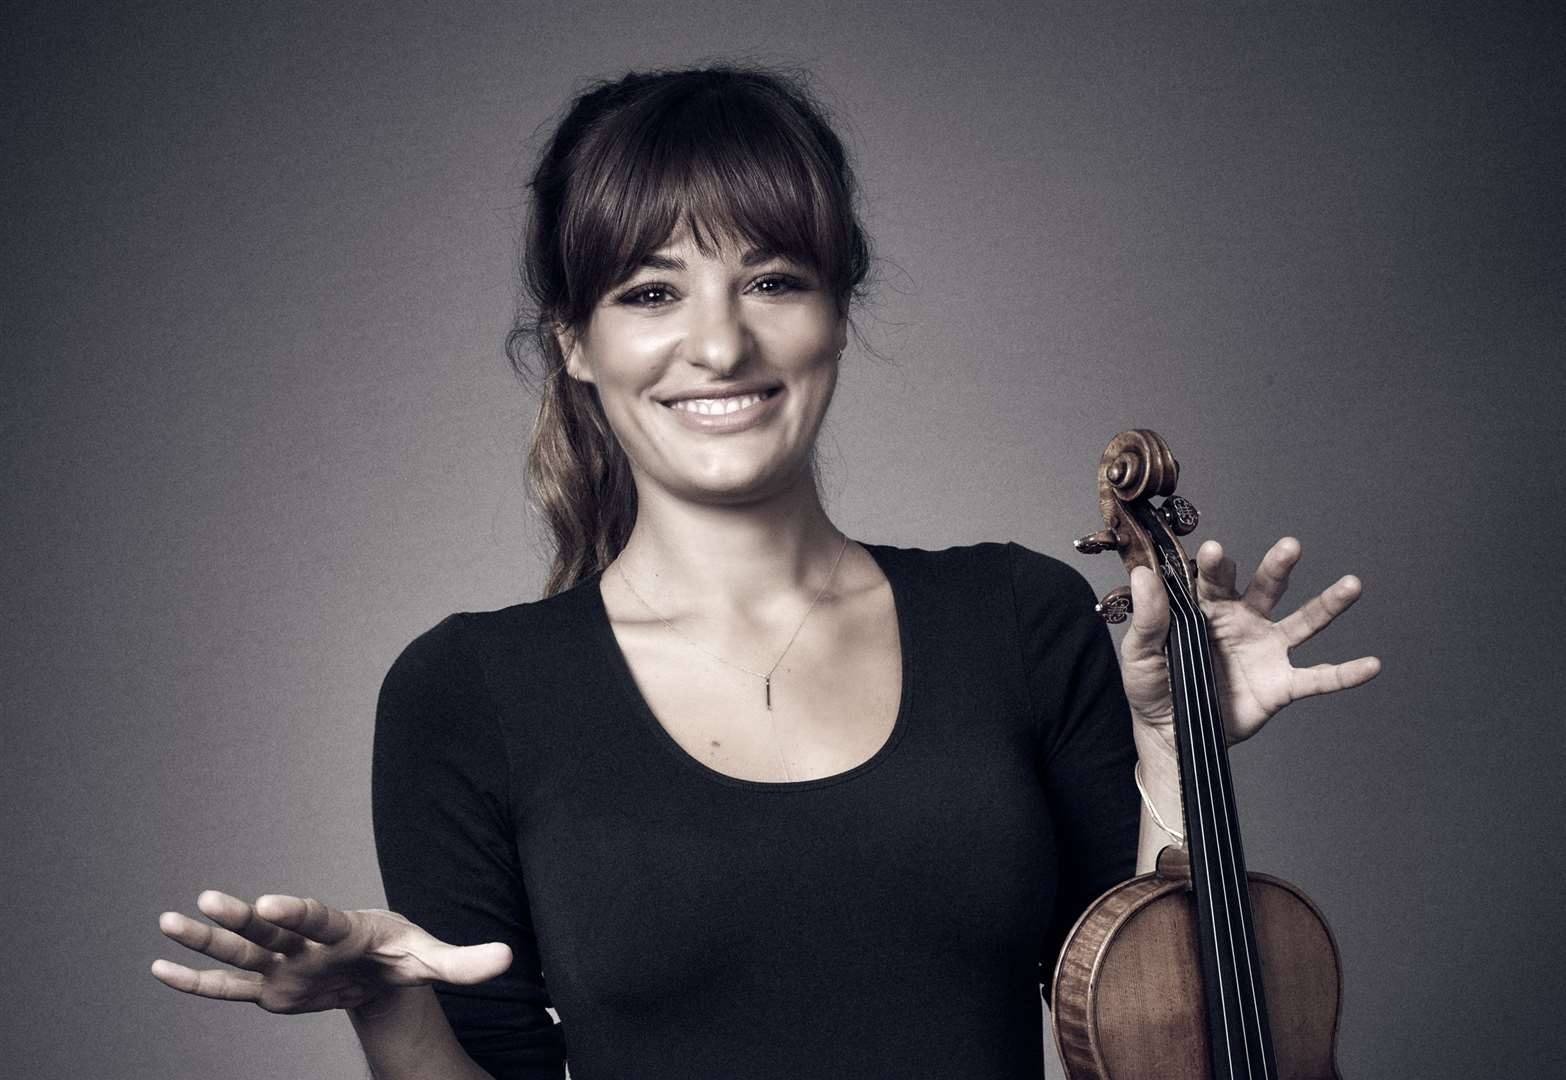 Violinist Nicola Benedetti joins Grantham musicians for fund-raising concert at St Wulfram's Church